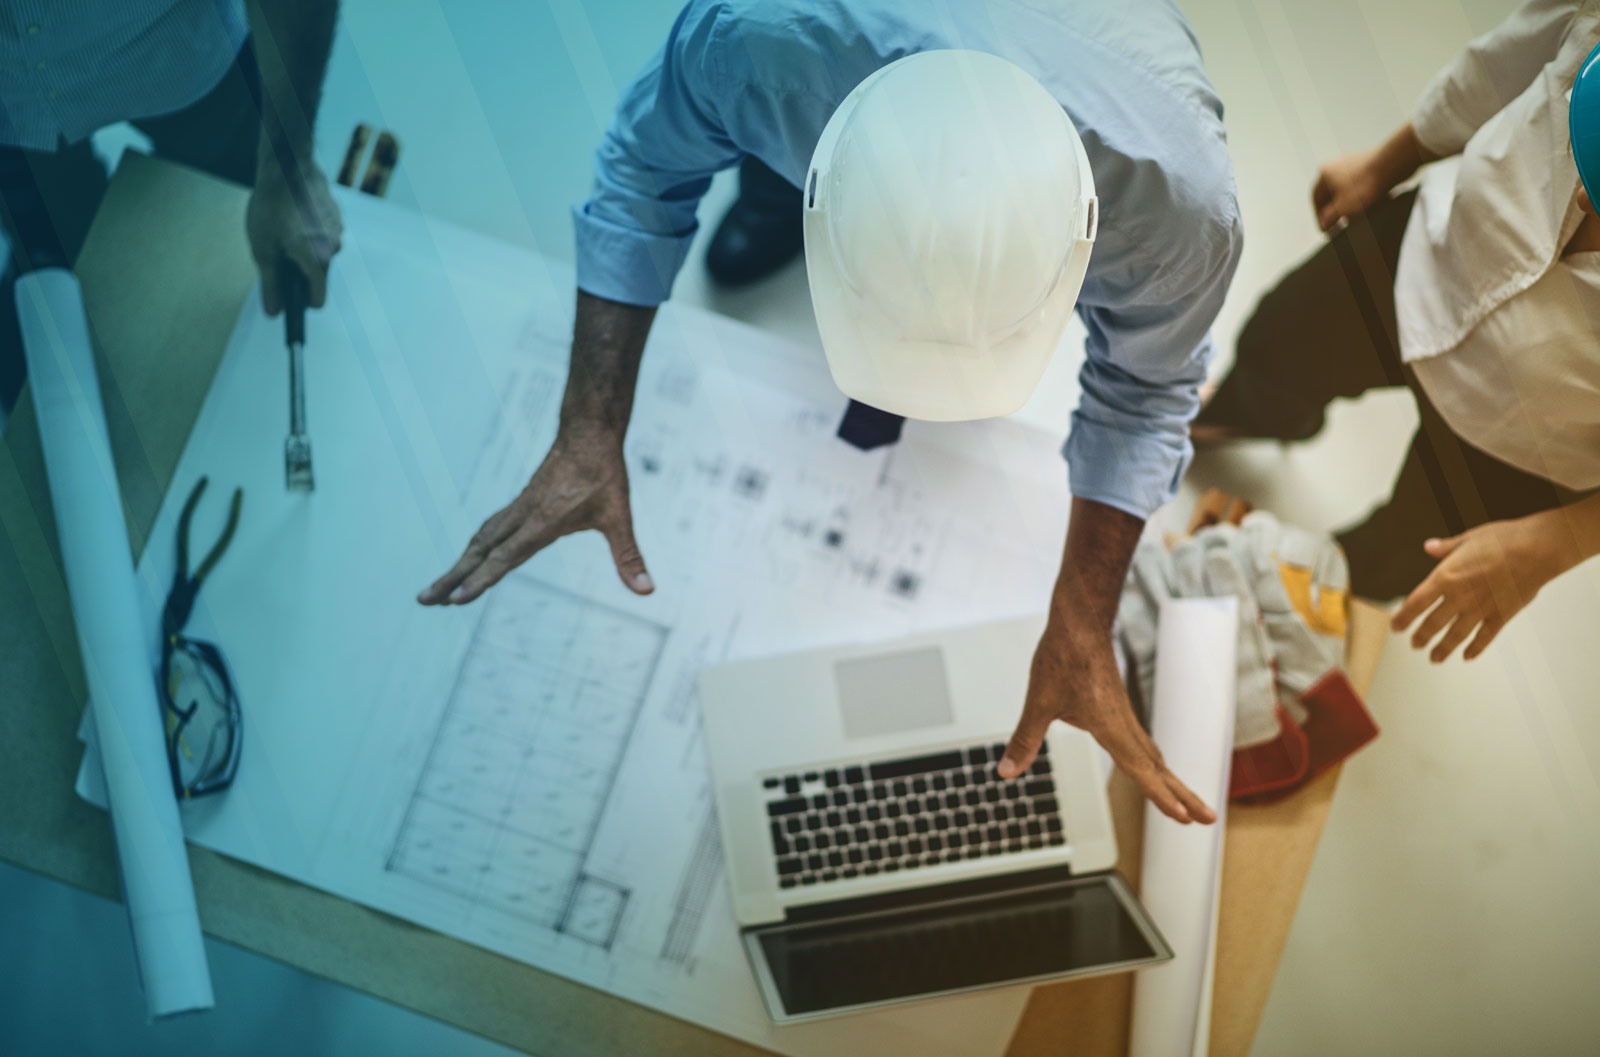 Construction Site Supervisor coordinating with team members over blueprints